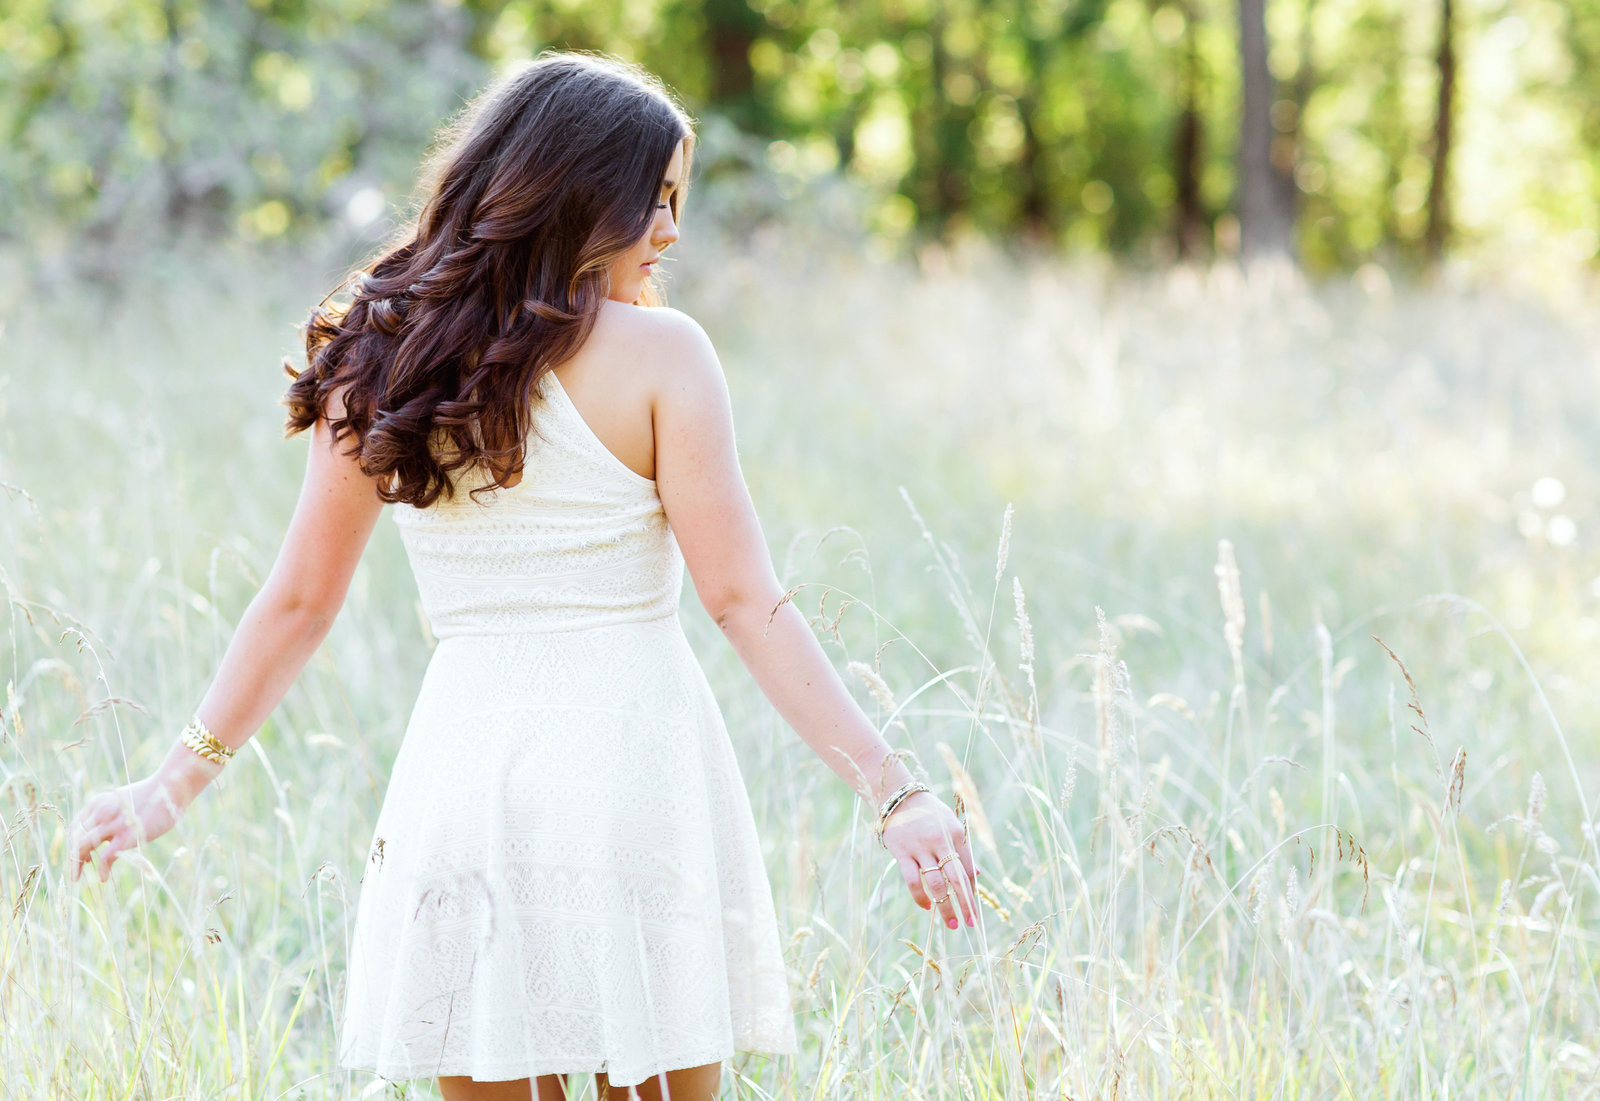 eugene-oregon-senior-photographer-holli-true-hailey-1001